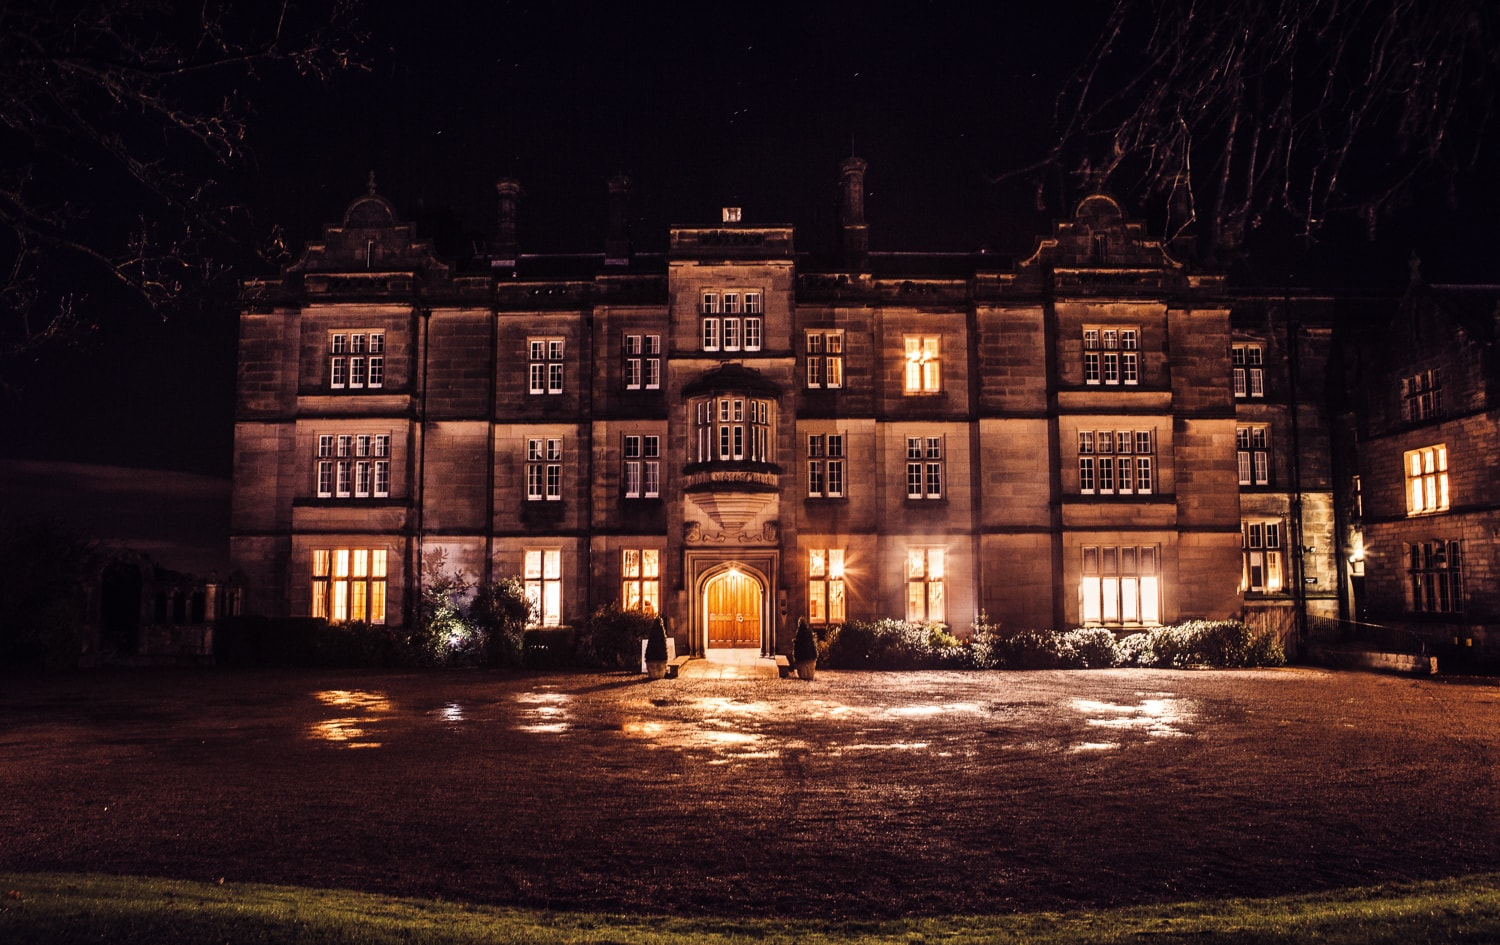 Matfen Hall at night